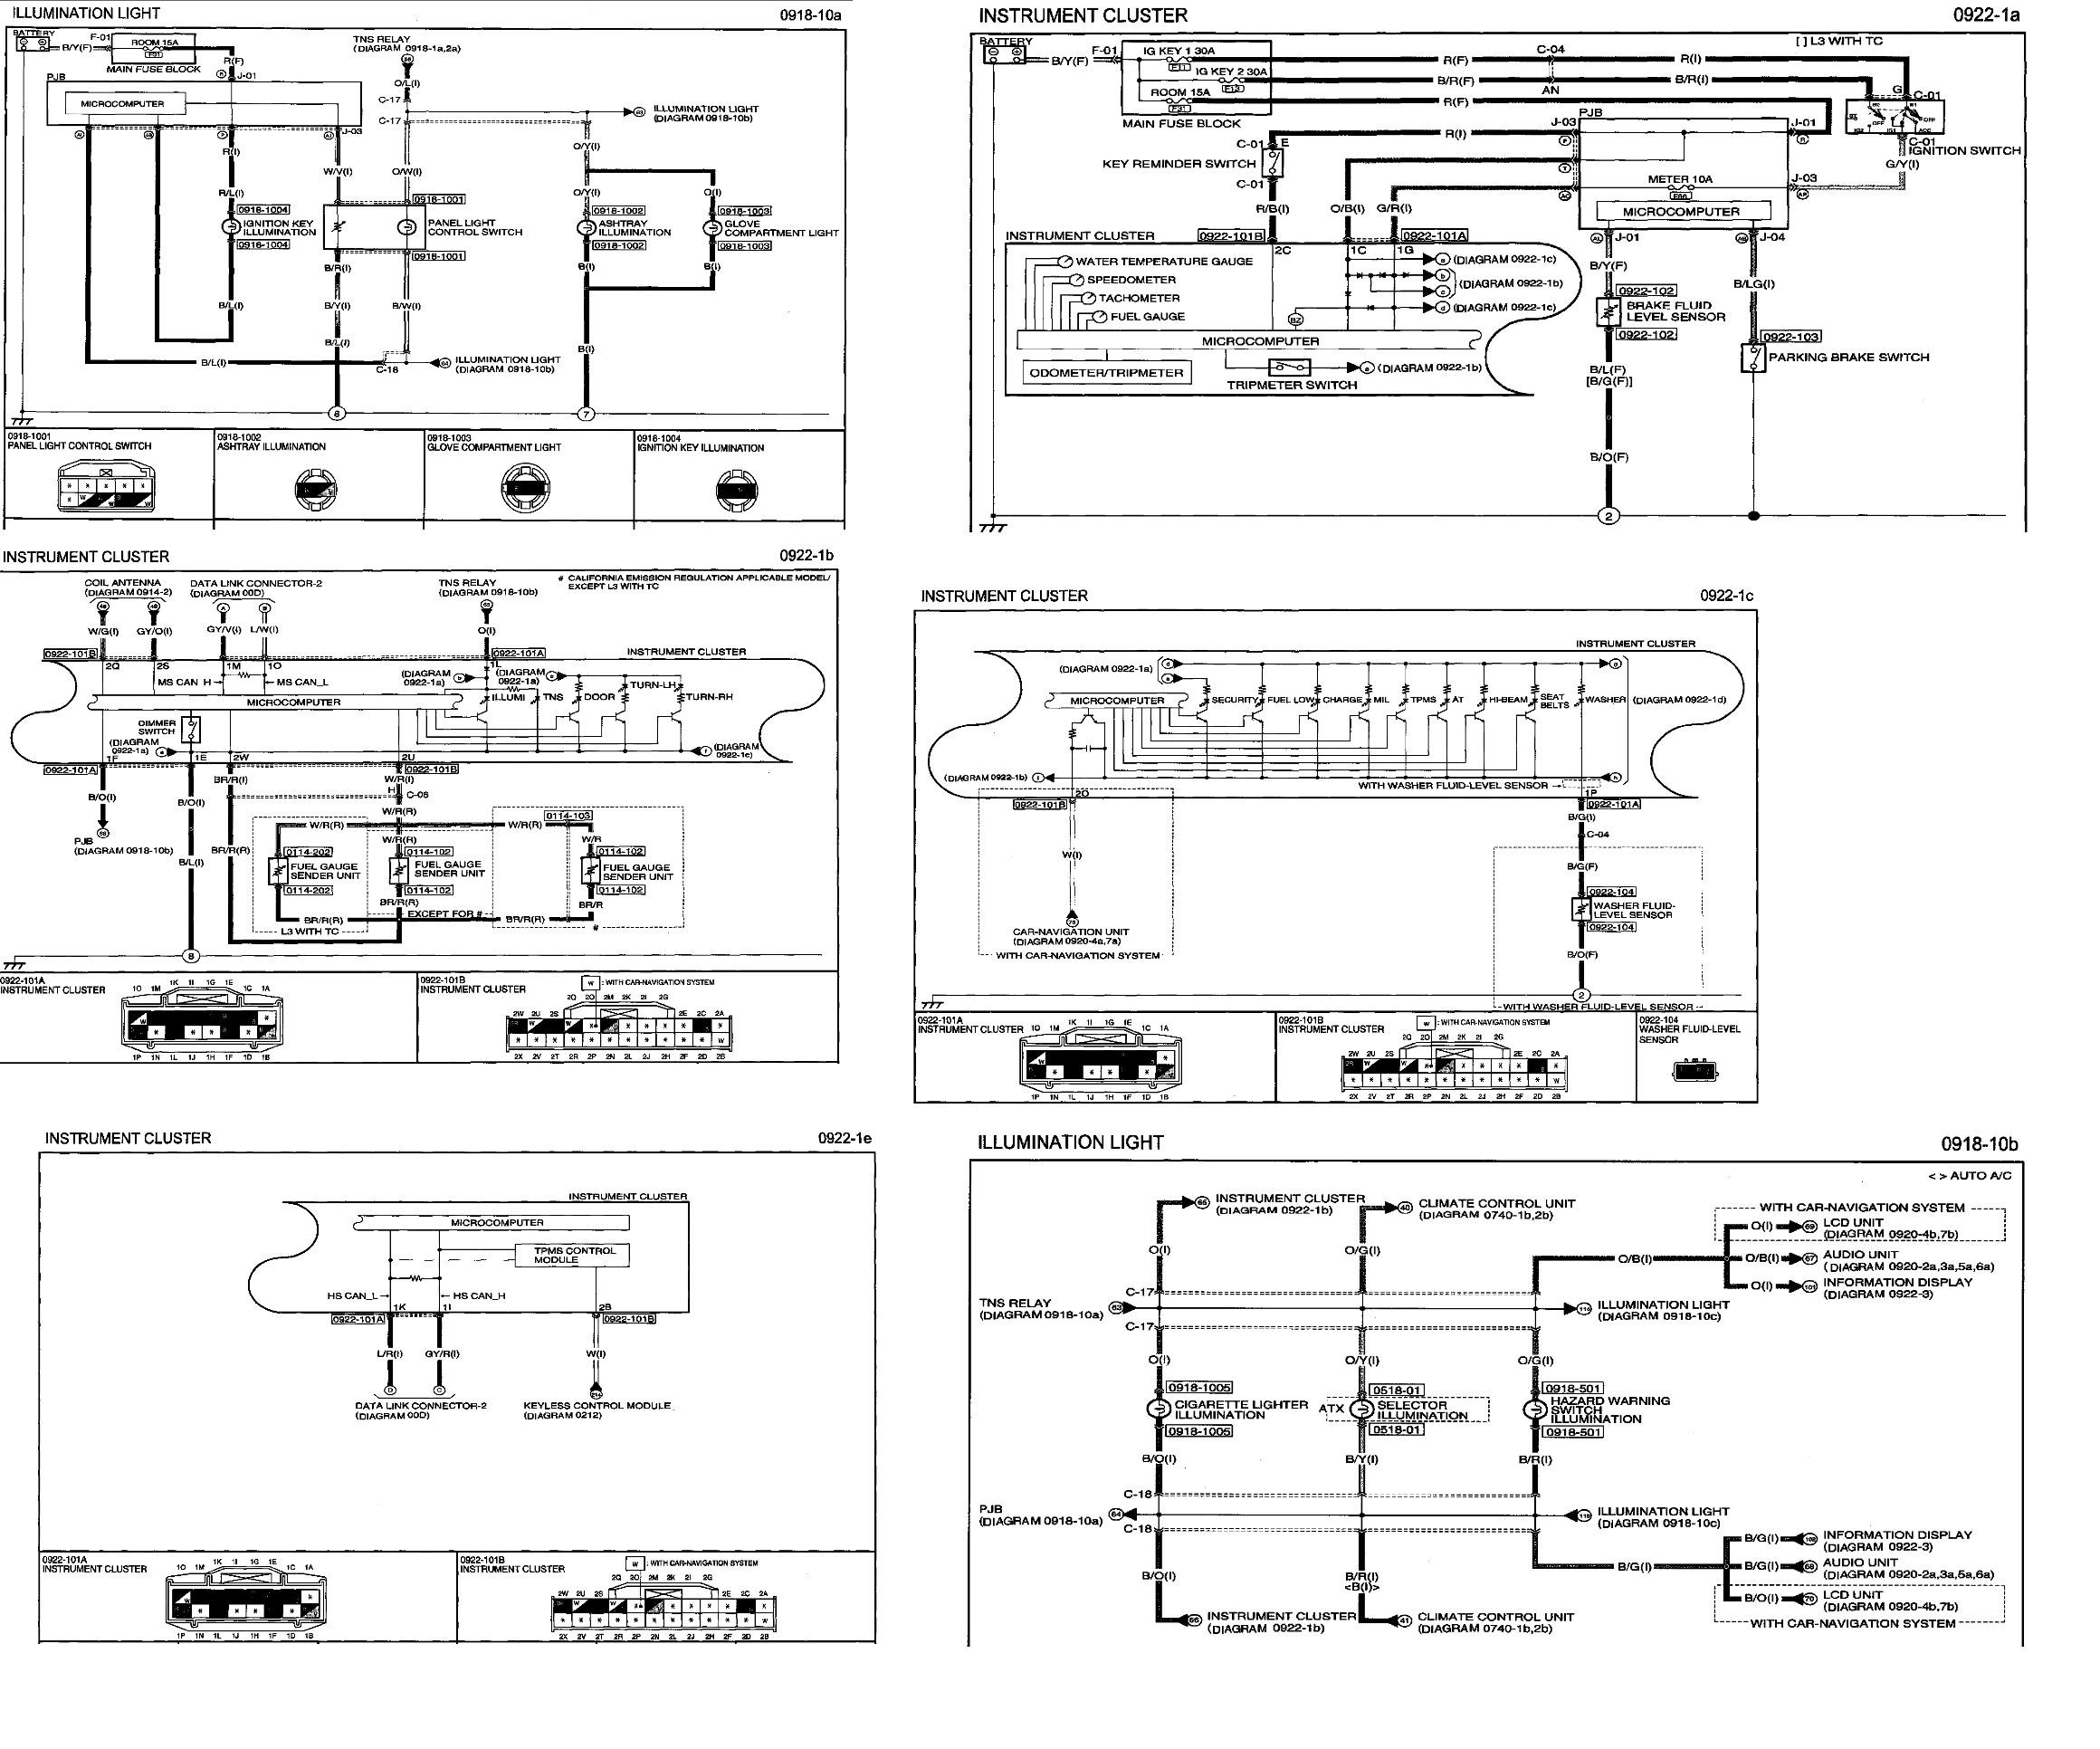 2010 Mazda 3 Engine Wiring Diagram] Mazda 3 Wiring Diagram 2010 Full Version Hd Quality Of 2010 Mazda 3 Engine Wiring